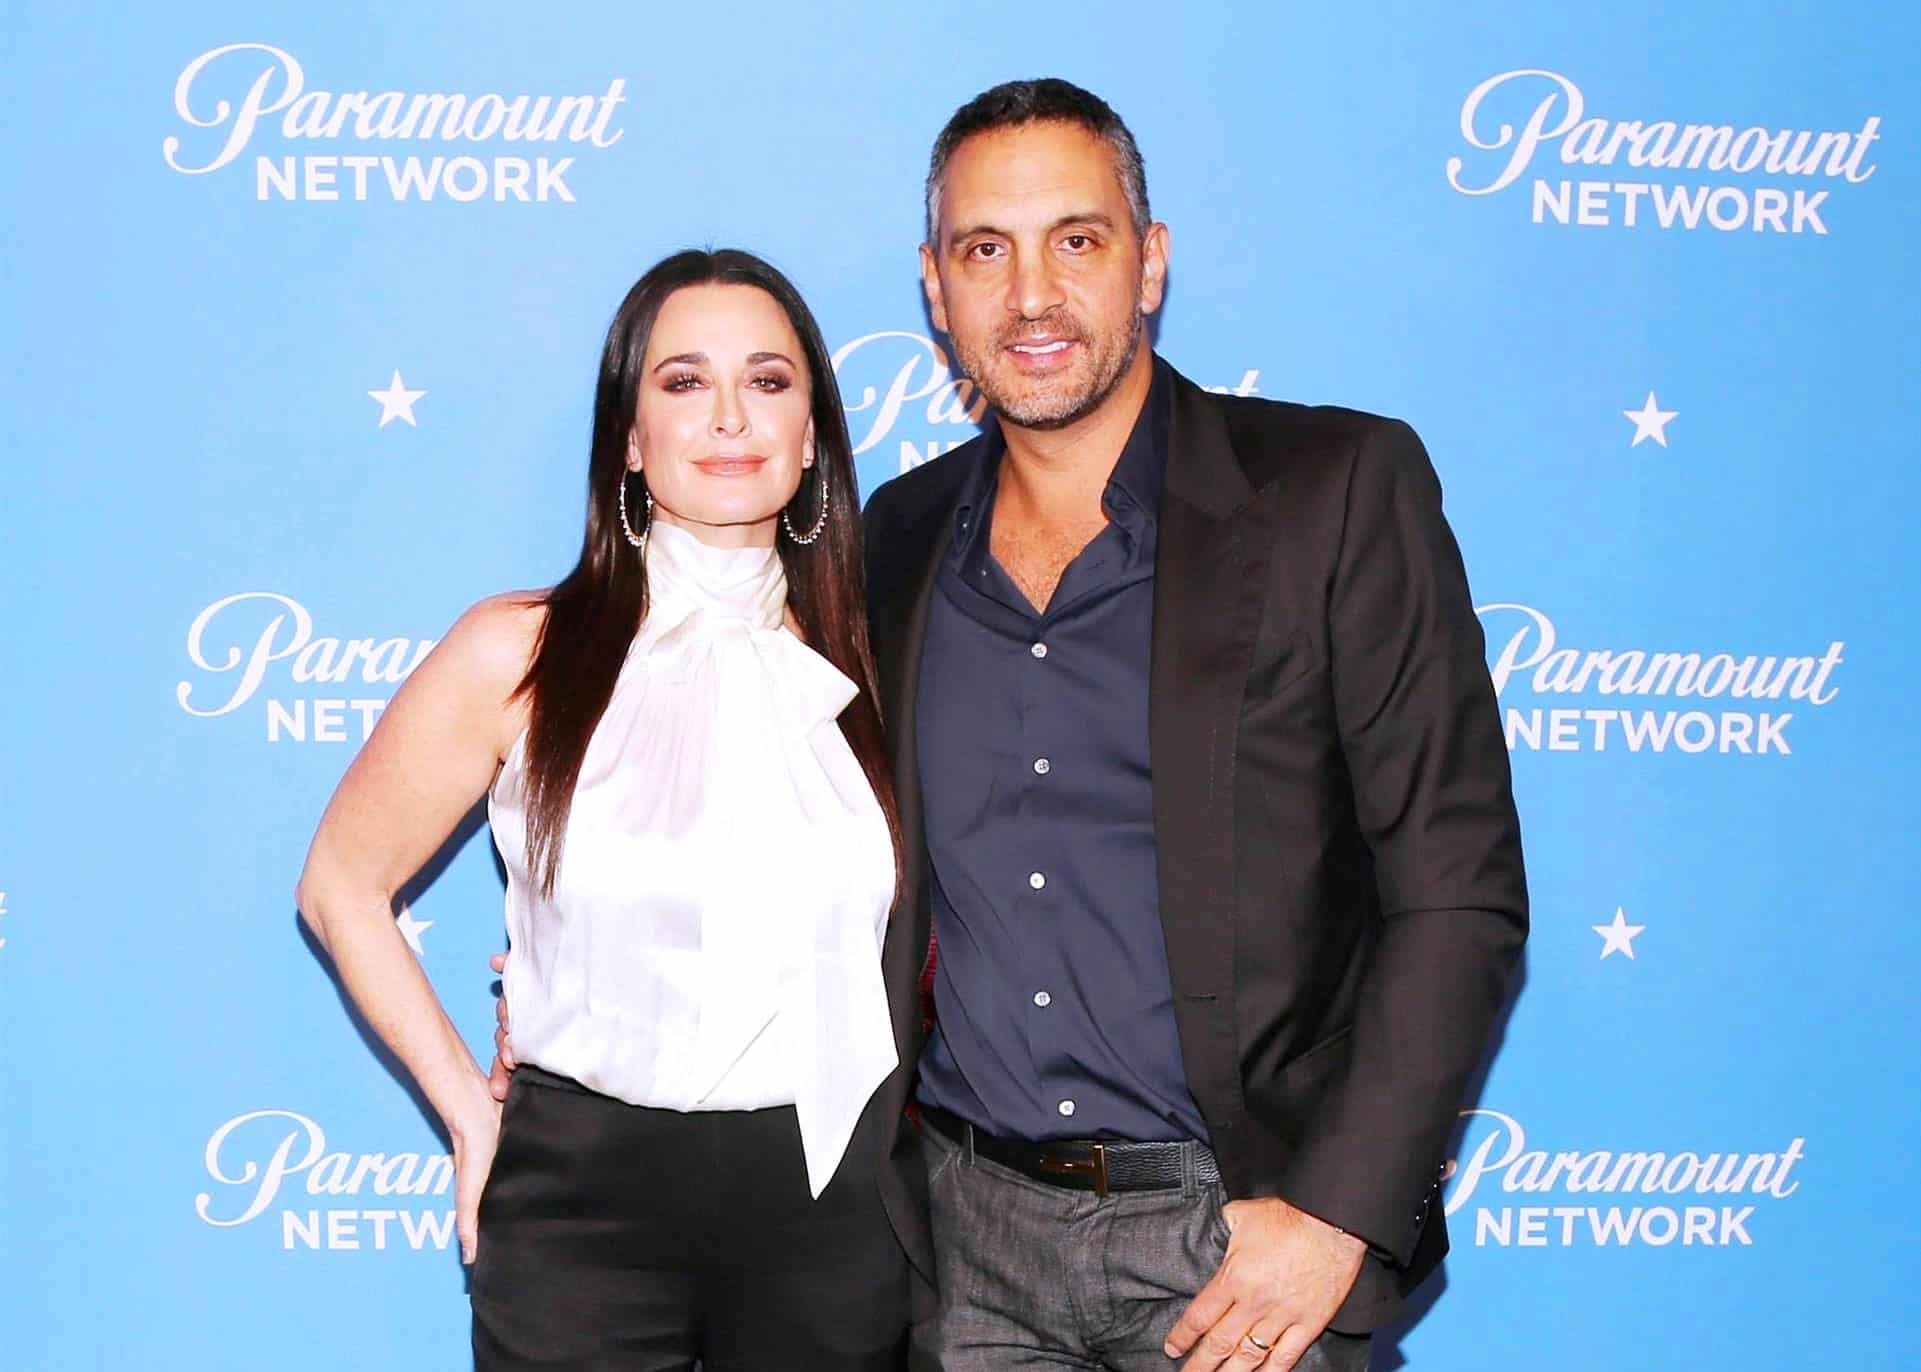 RHOBH Star Husband Mauricio Umansky Addresses Lawsuit, Responds to Rumors About His Real Estate Agency and Offers an Update on Rick Hilton Feud